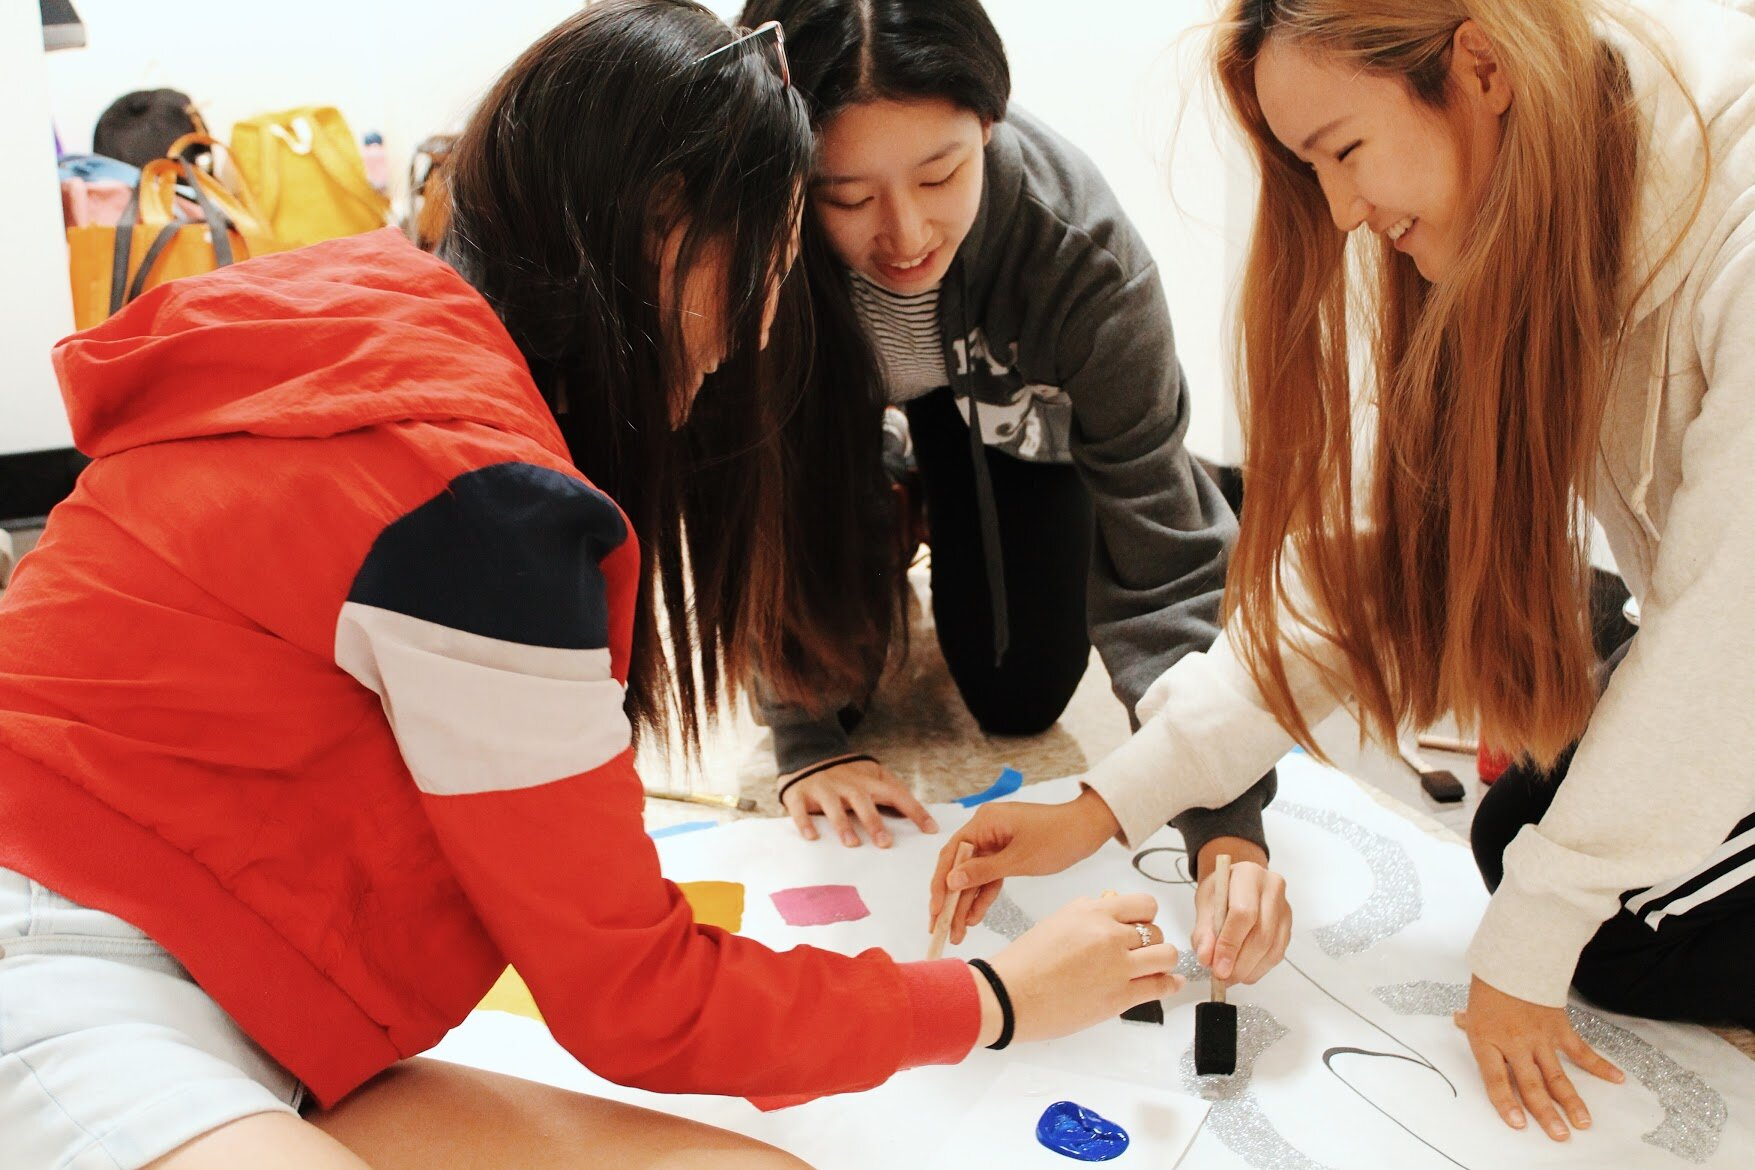 Members of the Leadership class working hard on posters. From right to left: Lauren Lee (CAHC '21), Angeline Xu (CV '22), and Lauren Sung (IDBR '22).